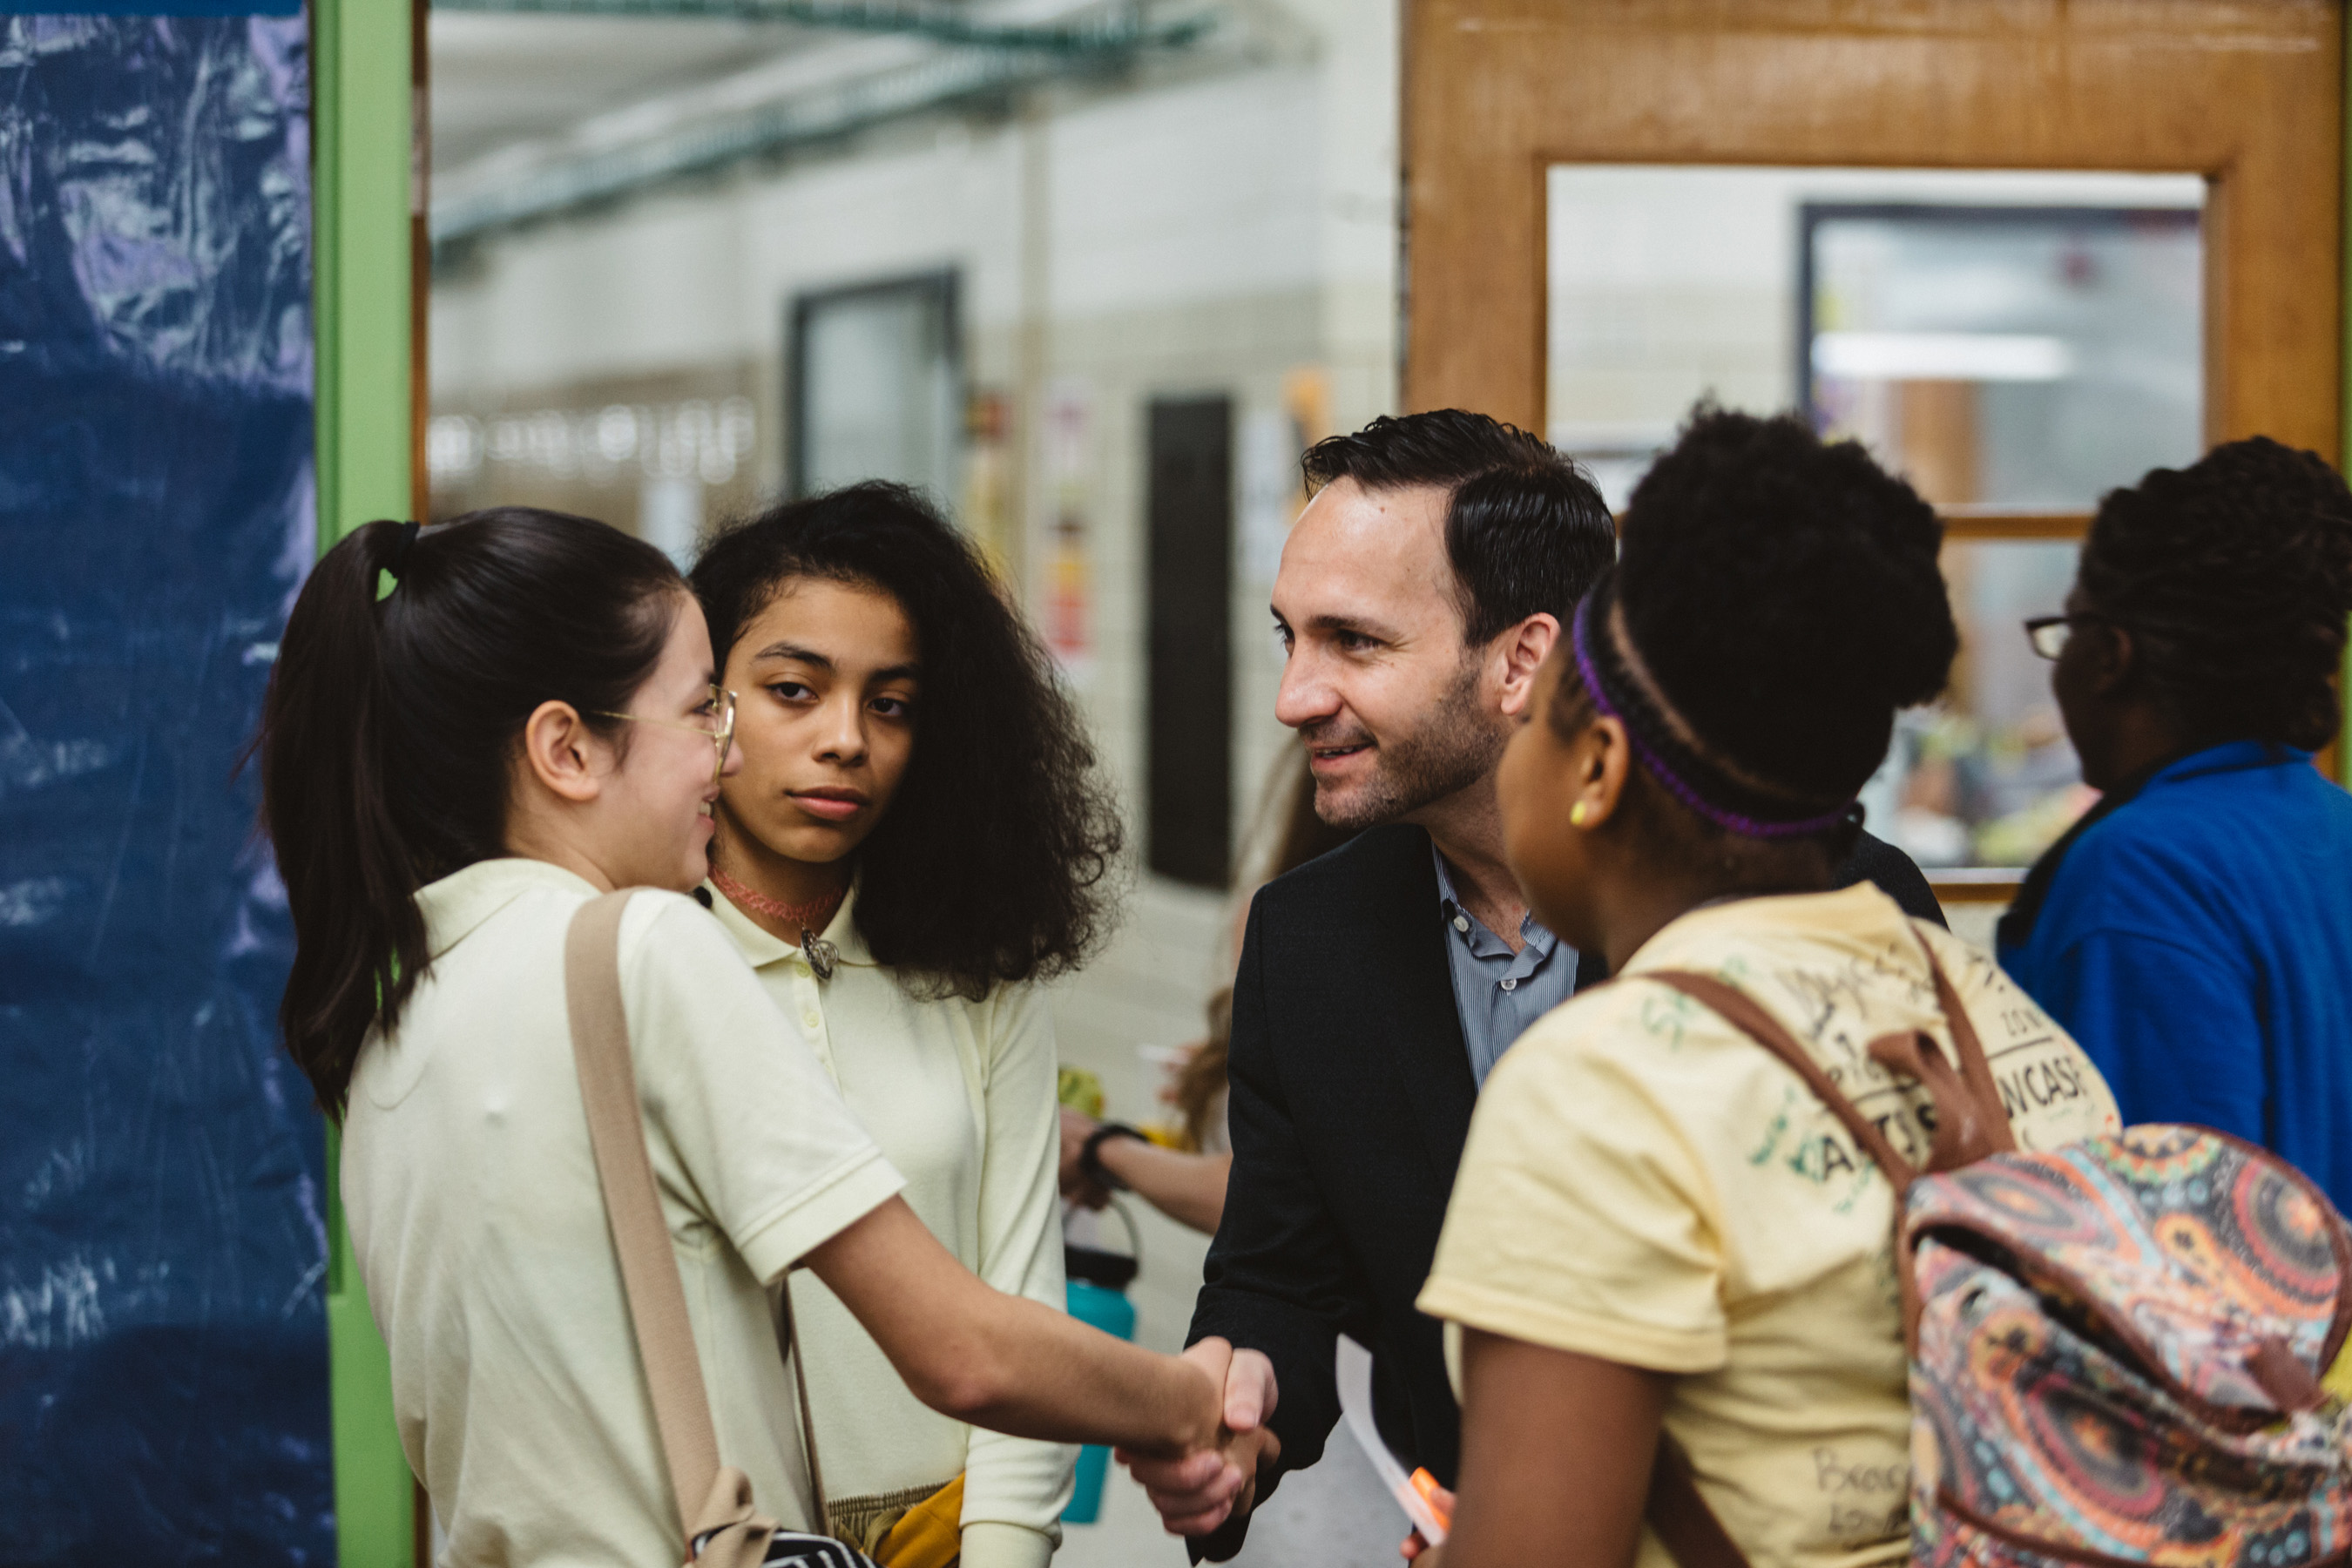 Krystal CEO Paul Macaluso greets students at Orchard Knob Middle School in Chattanooga, Tennessee.